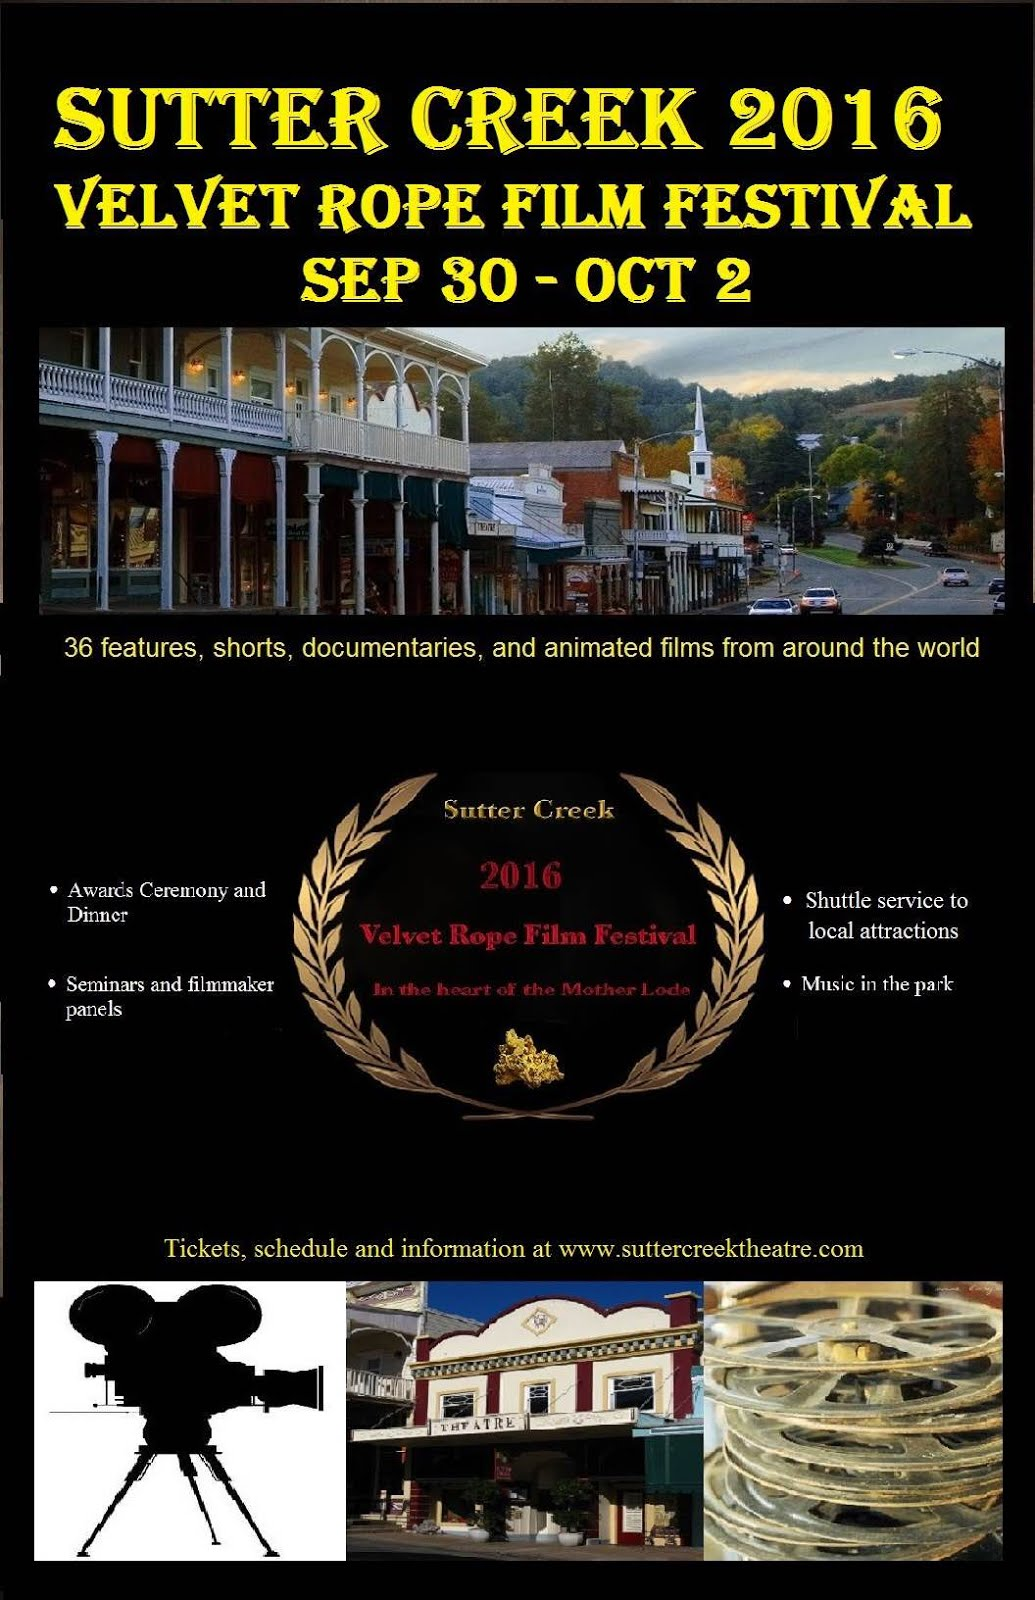 Velvet Rope Film Festival - Sept 30 - Oct 2